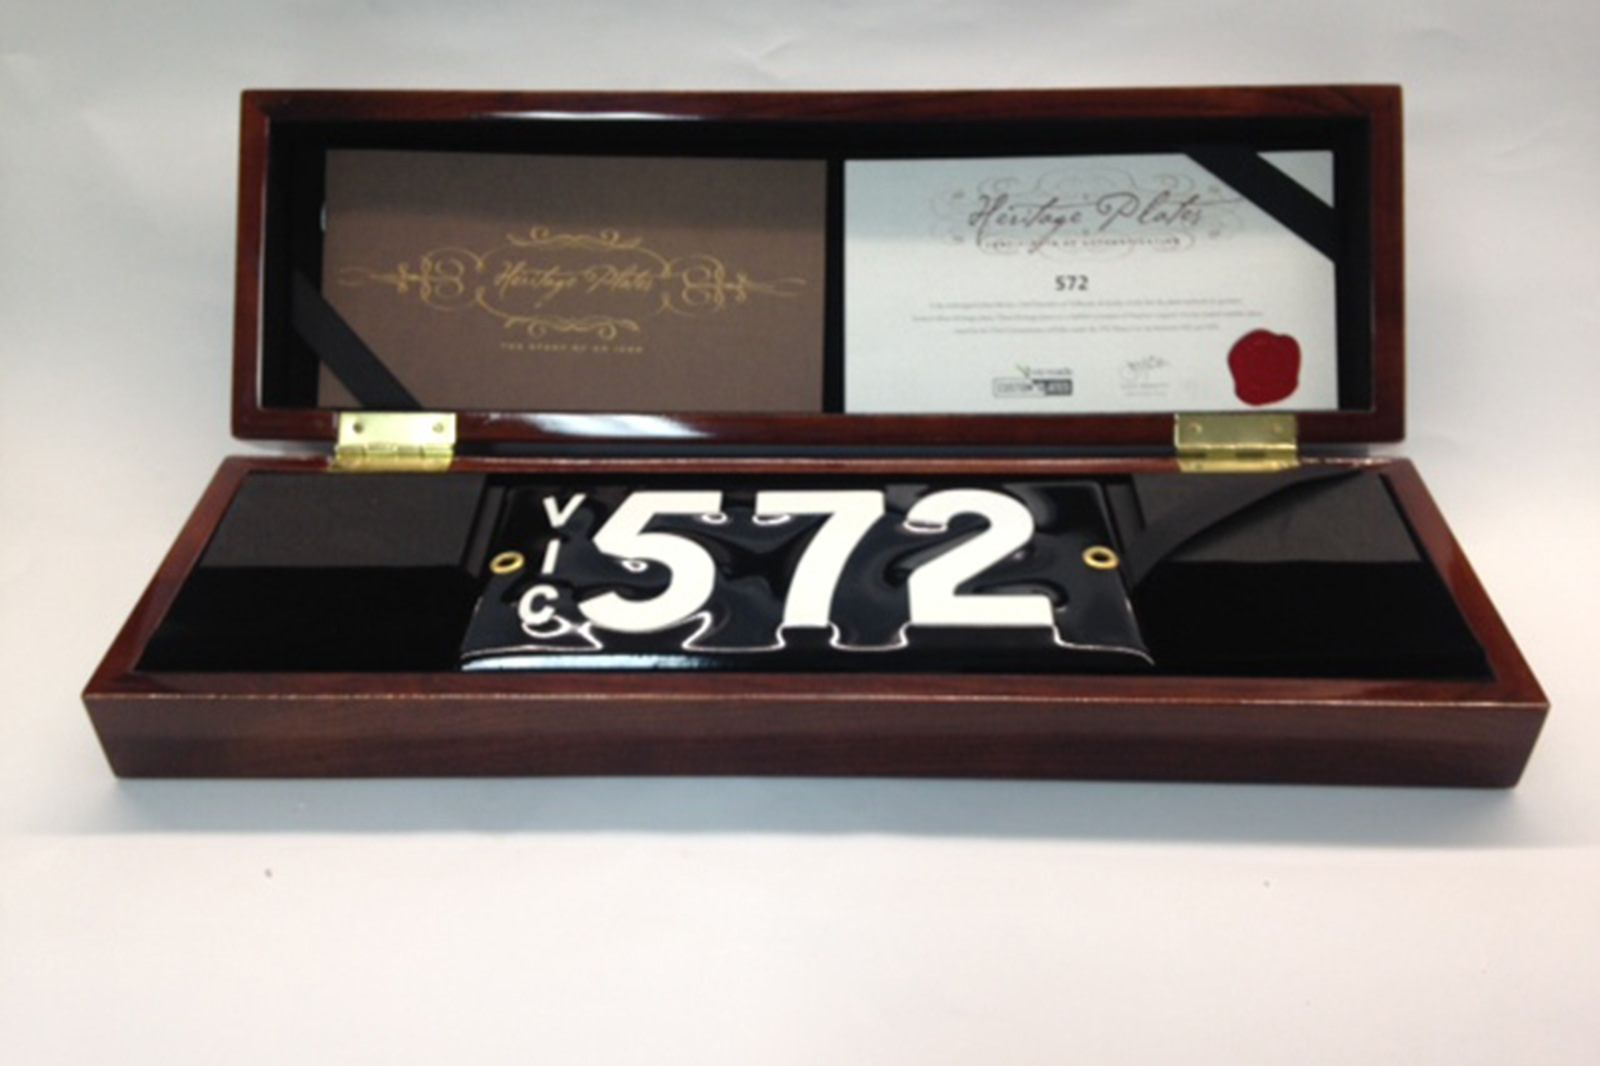 Victorian Numerical Heritage Plate - '572'